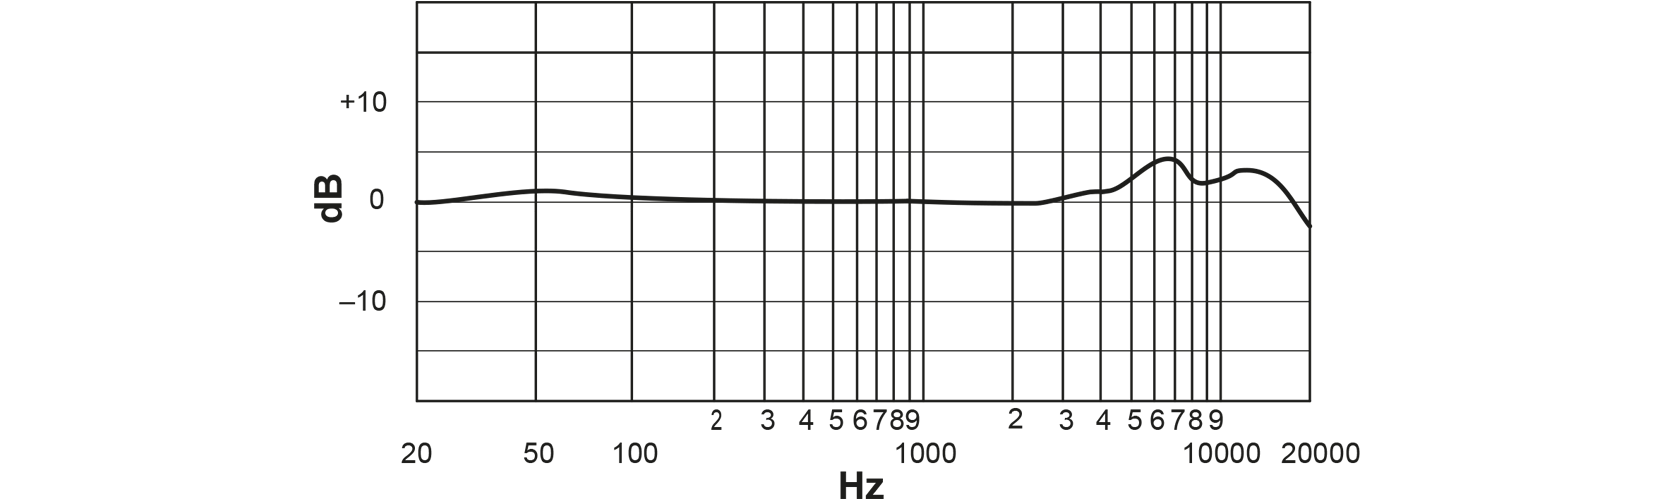 Shure Professional Large Diaphragm Condenser Microphone                  Frequency Response Curve Image